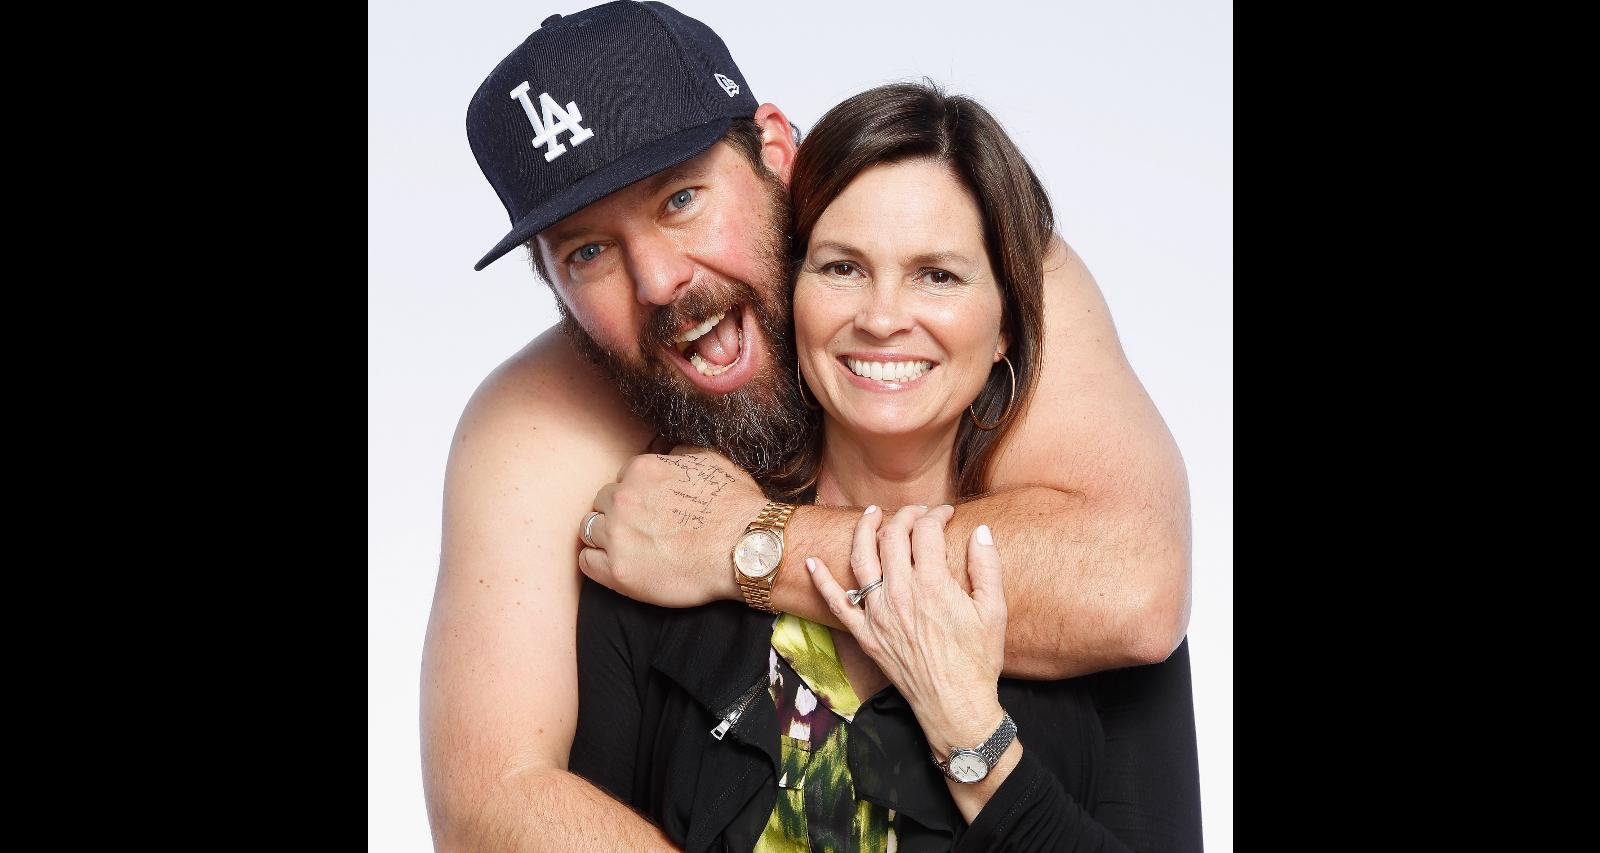 Bert Kreischer's Wife, LeeAnn Kreischer Wiki, Age, Family, Education, Kids and Facts About The Podcast Host of Wife of the Party